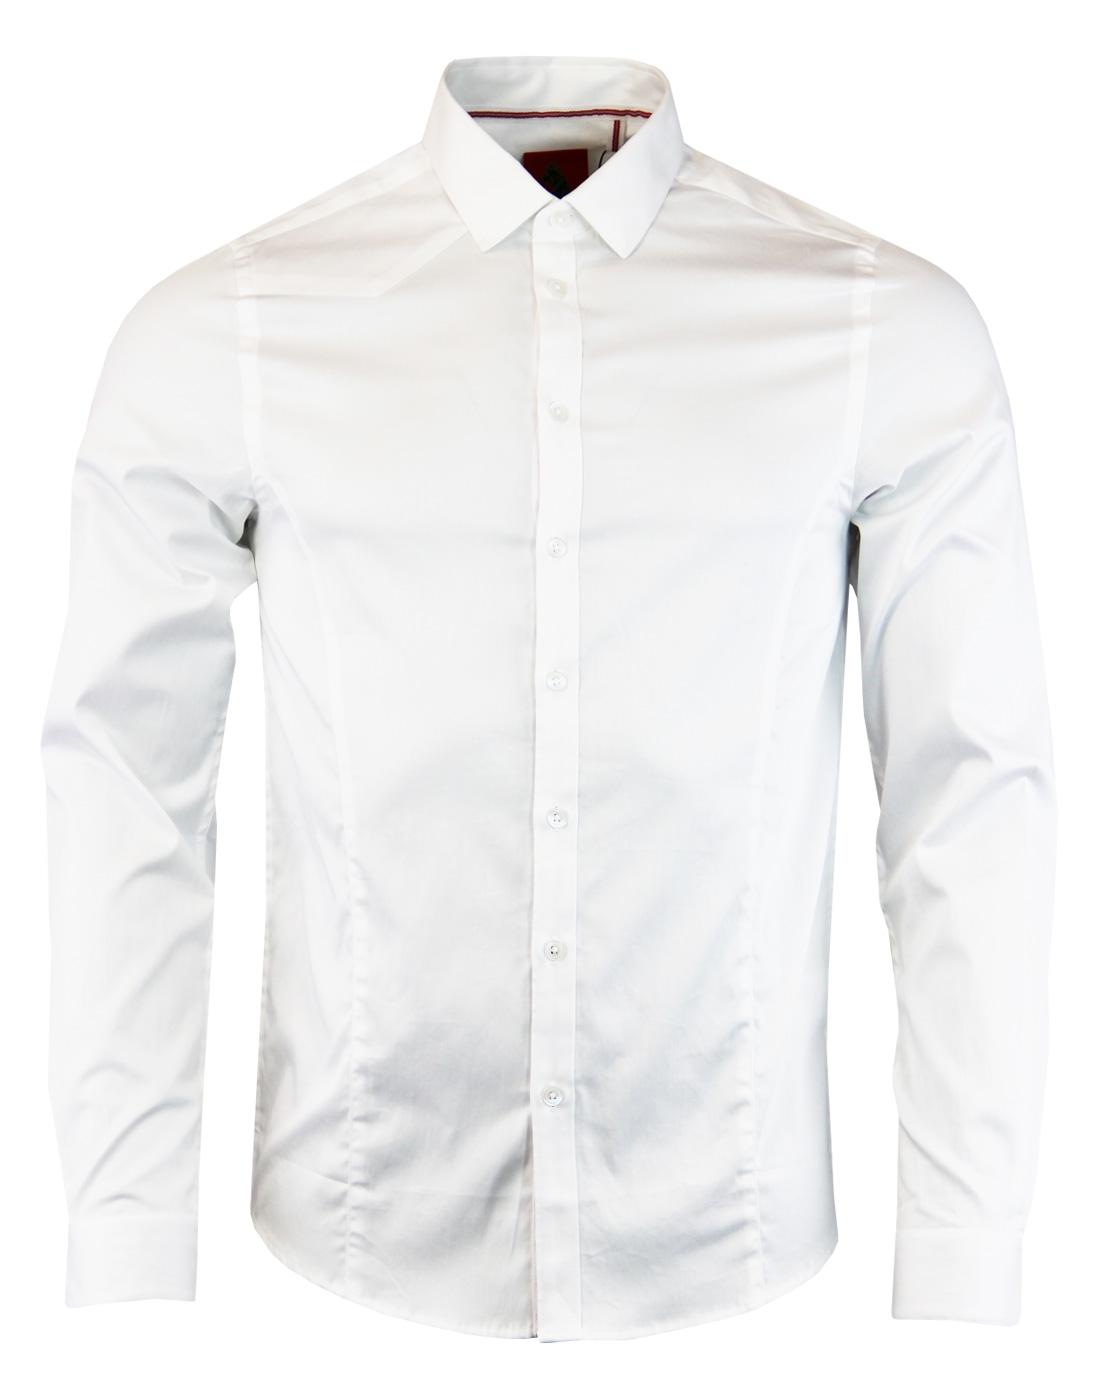 Butchers Pencil LUKE 1977 Mod Slim Fit Shirt WHITE